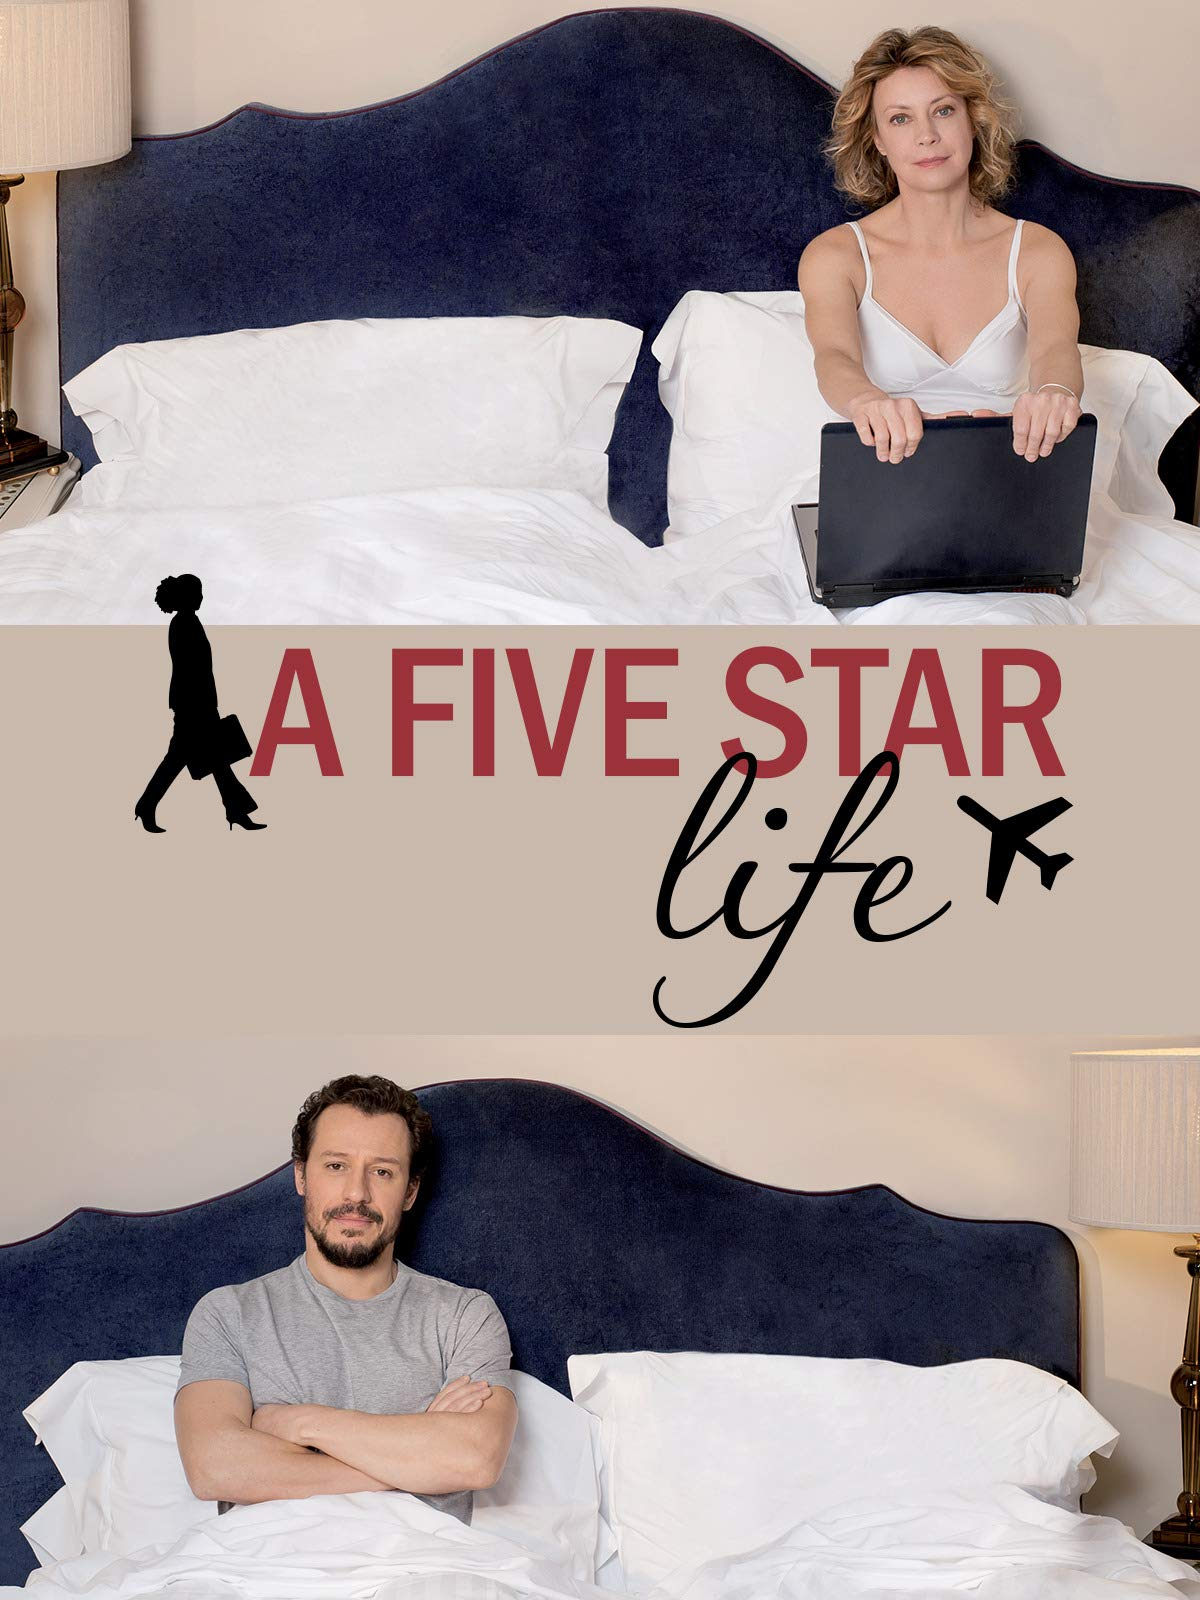 A Five Star Life - Viaggio sola